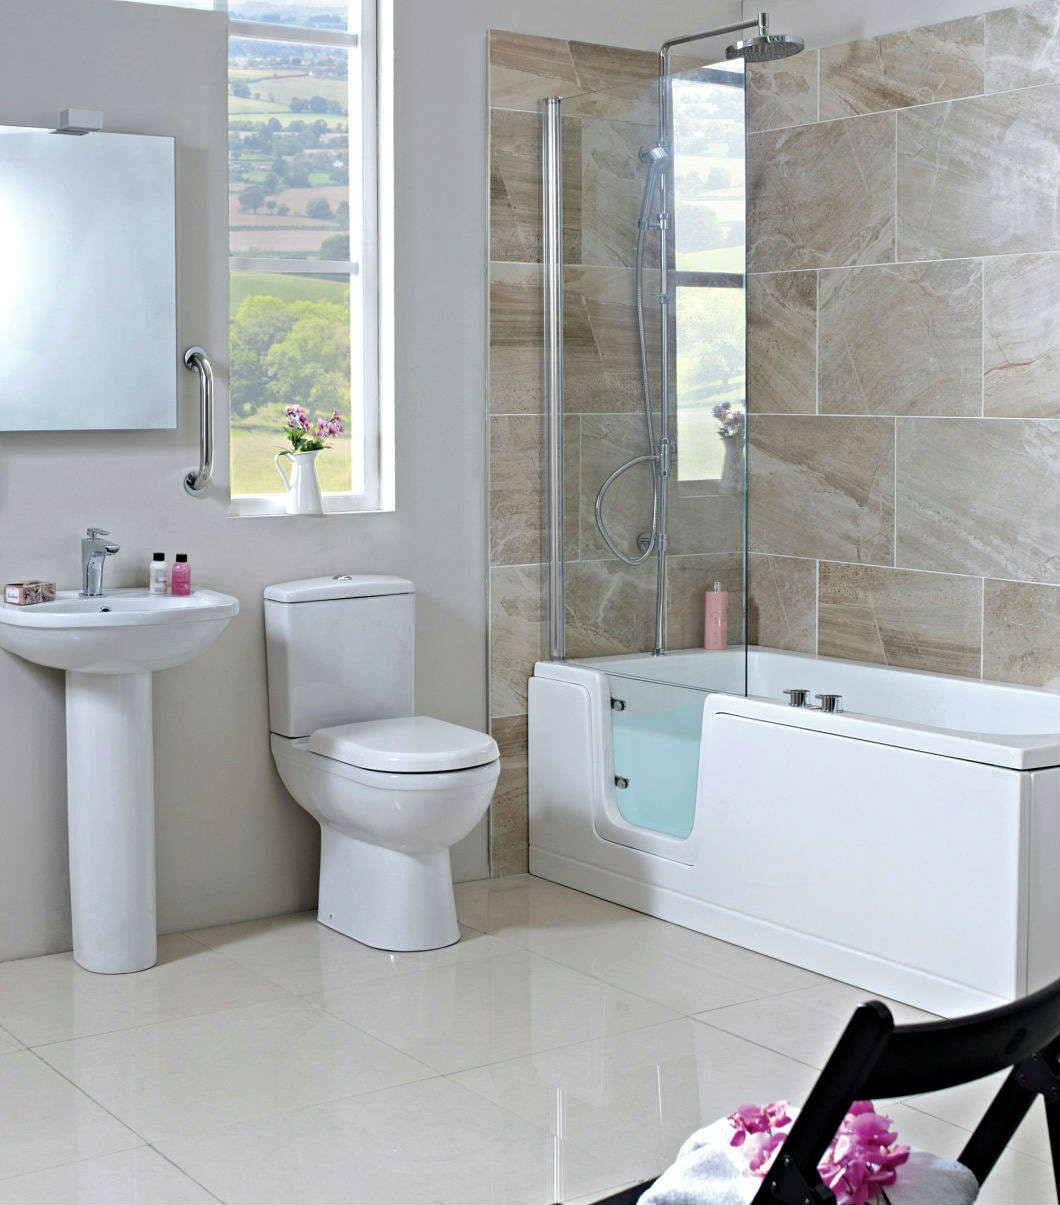 stylish and safe easy access bathrooms design & installed by More Bathrooms in Leeds.